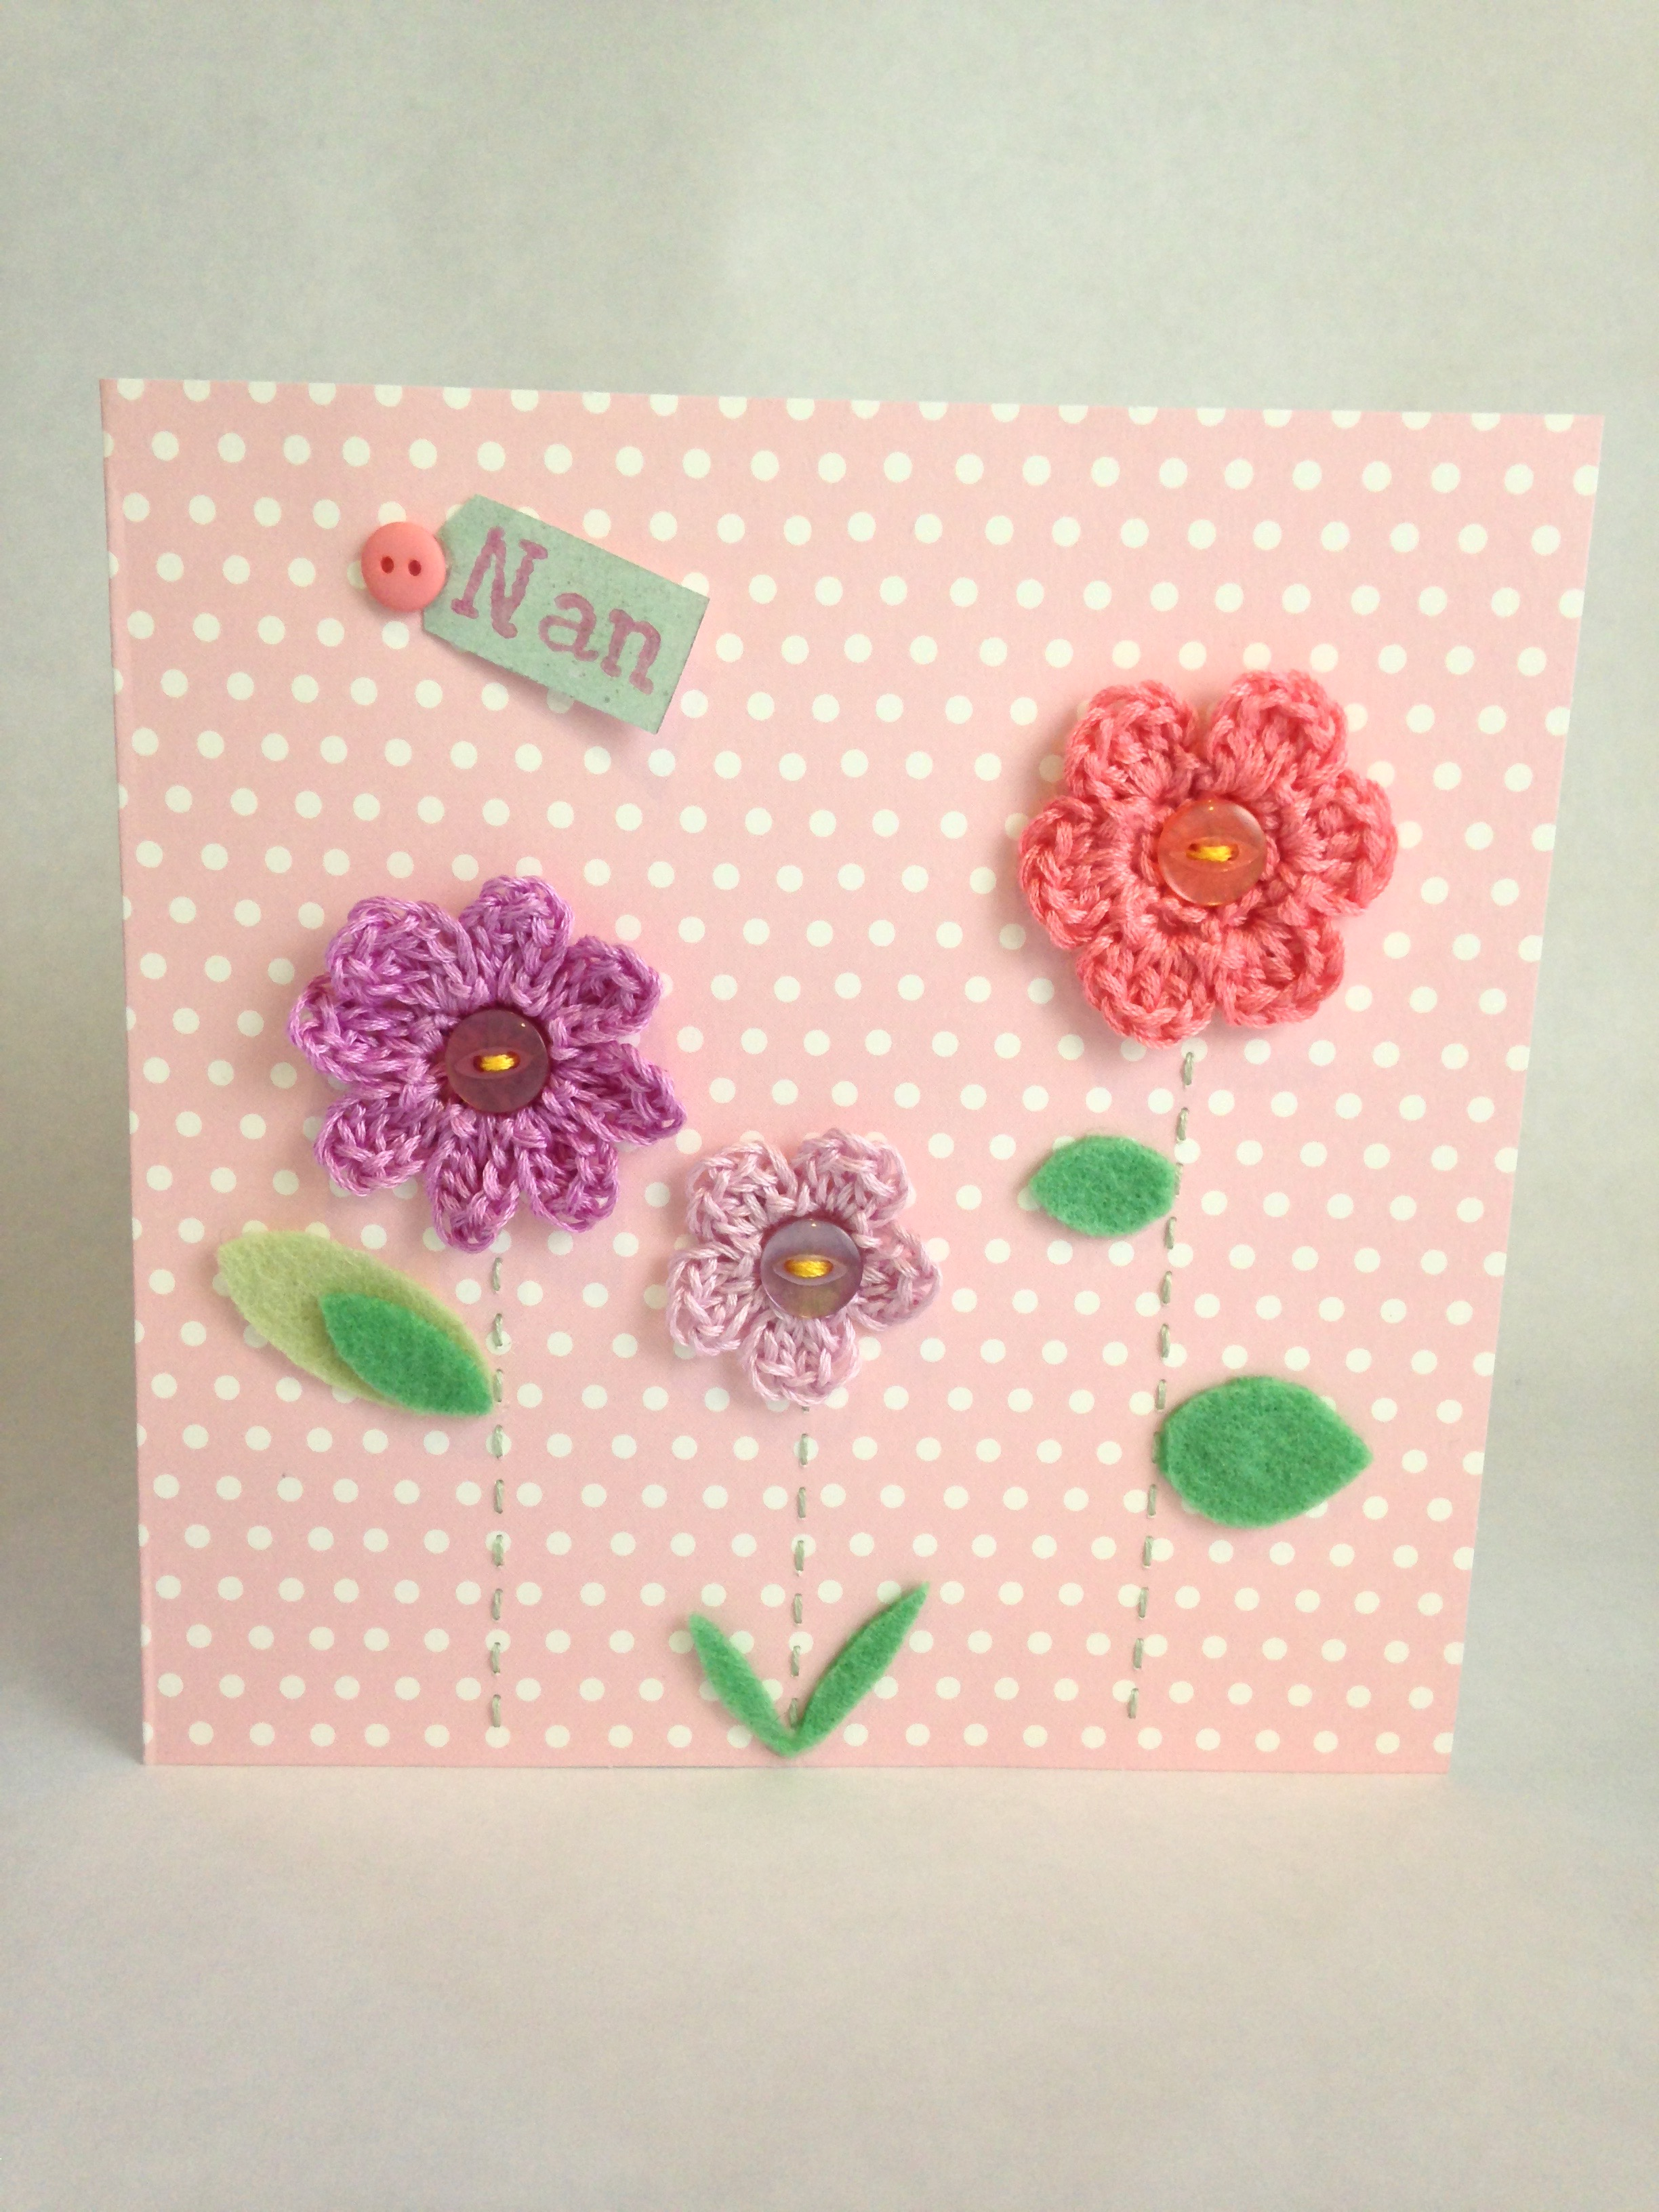 Hand crocheted and hand stitched greetings card.